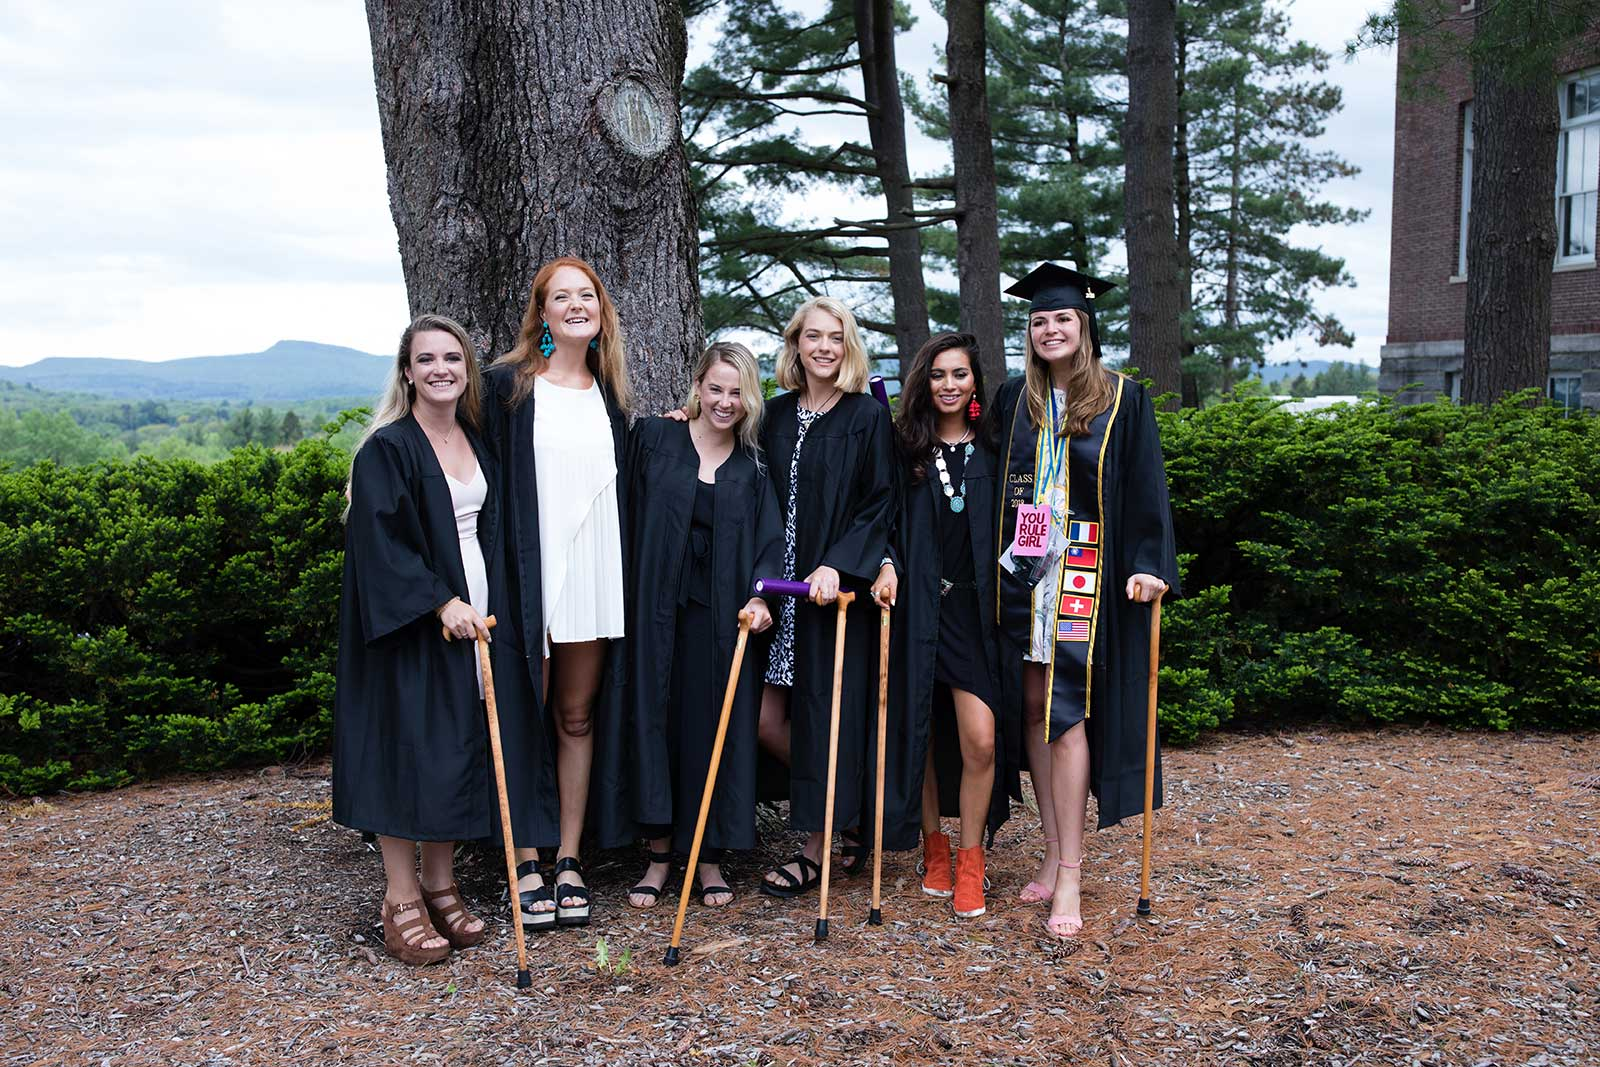 Graduates posing with their Conway Canes after the ceremony